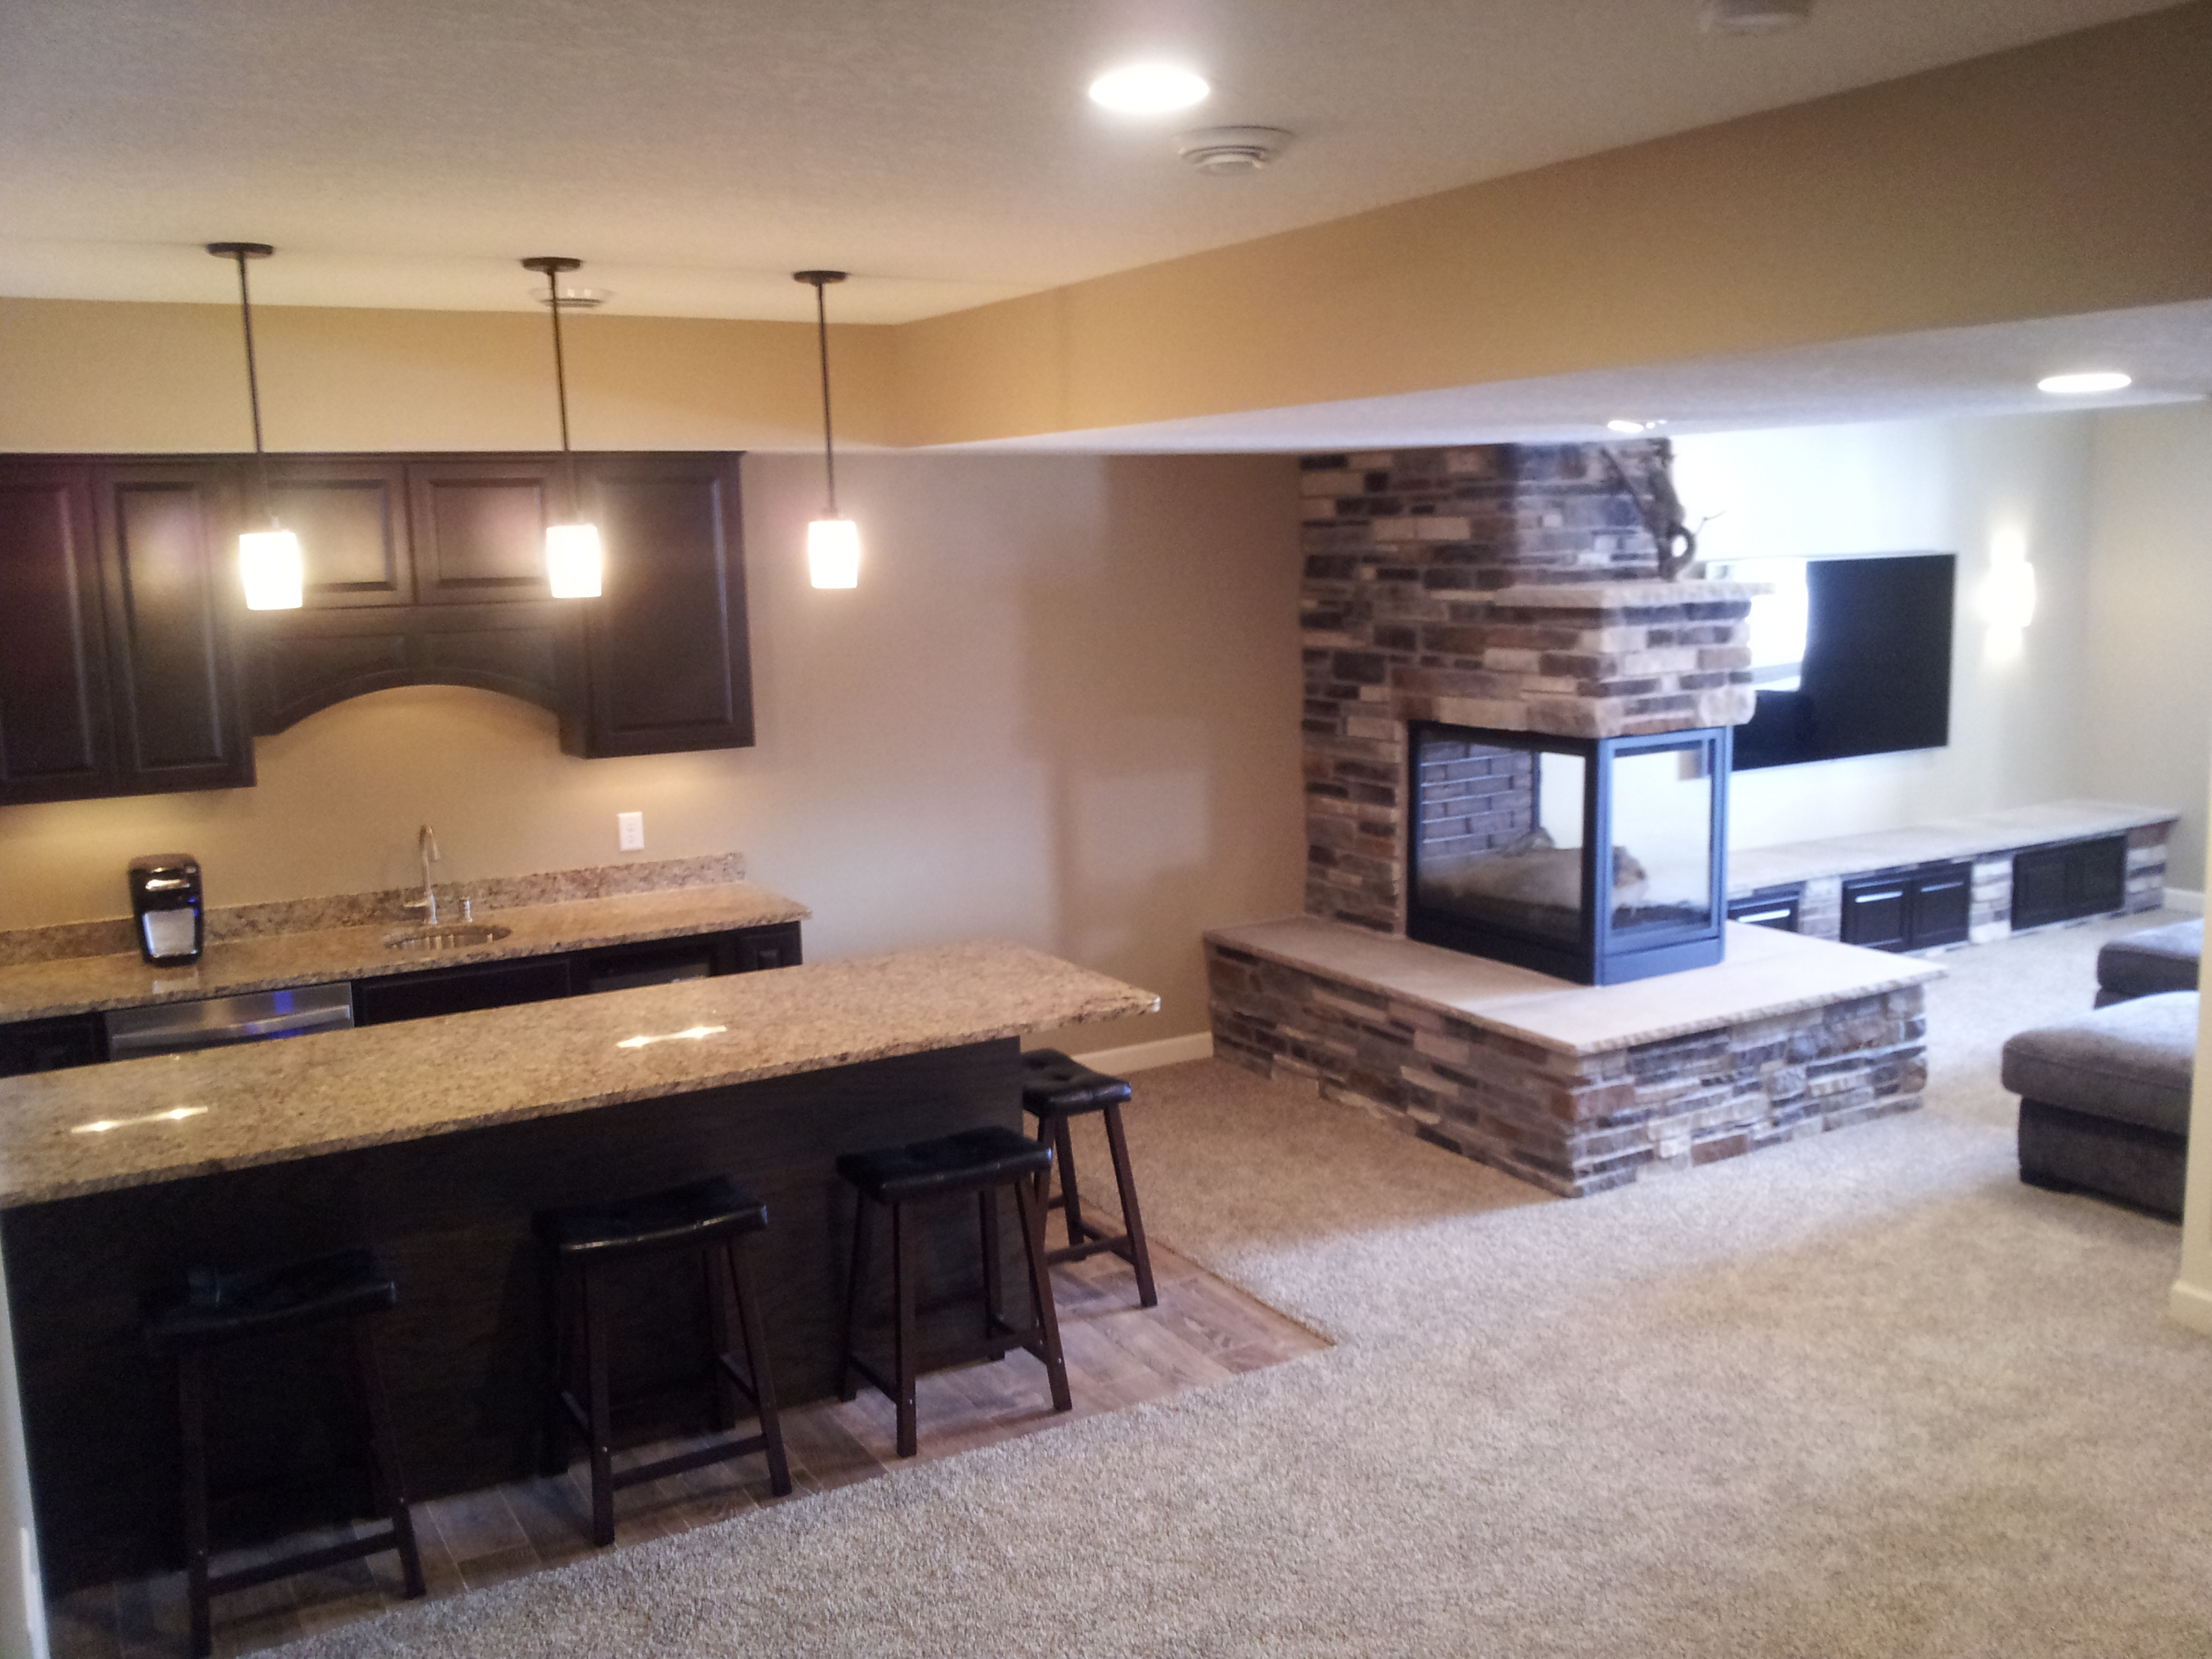 Basement Remodeling Mn basement remodel, maple grove, mn | advanced home improvement